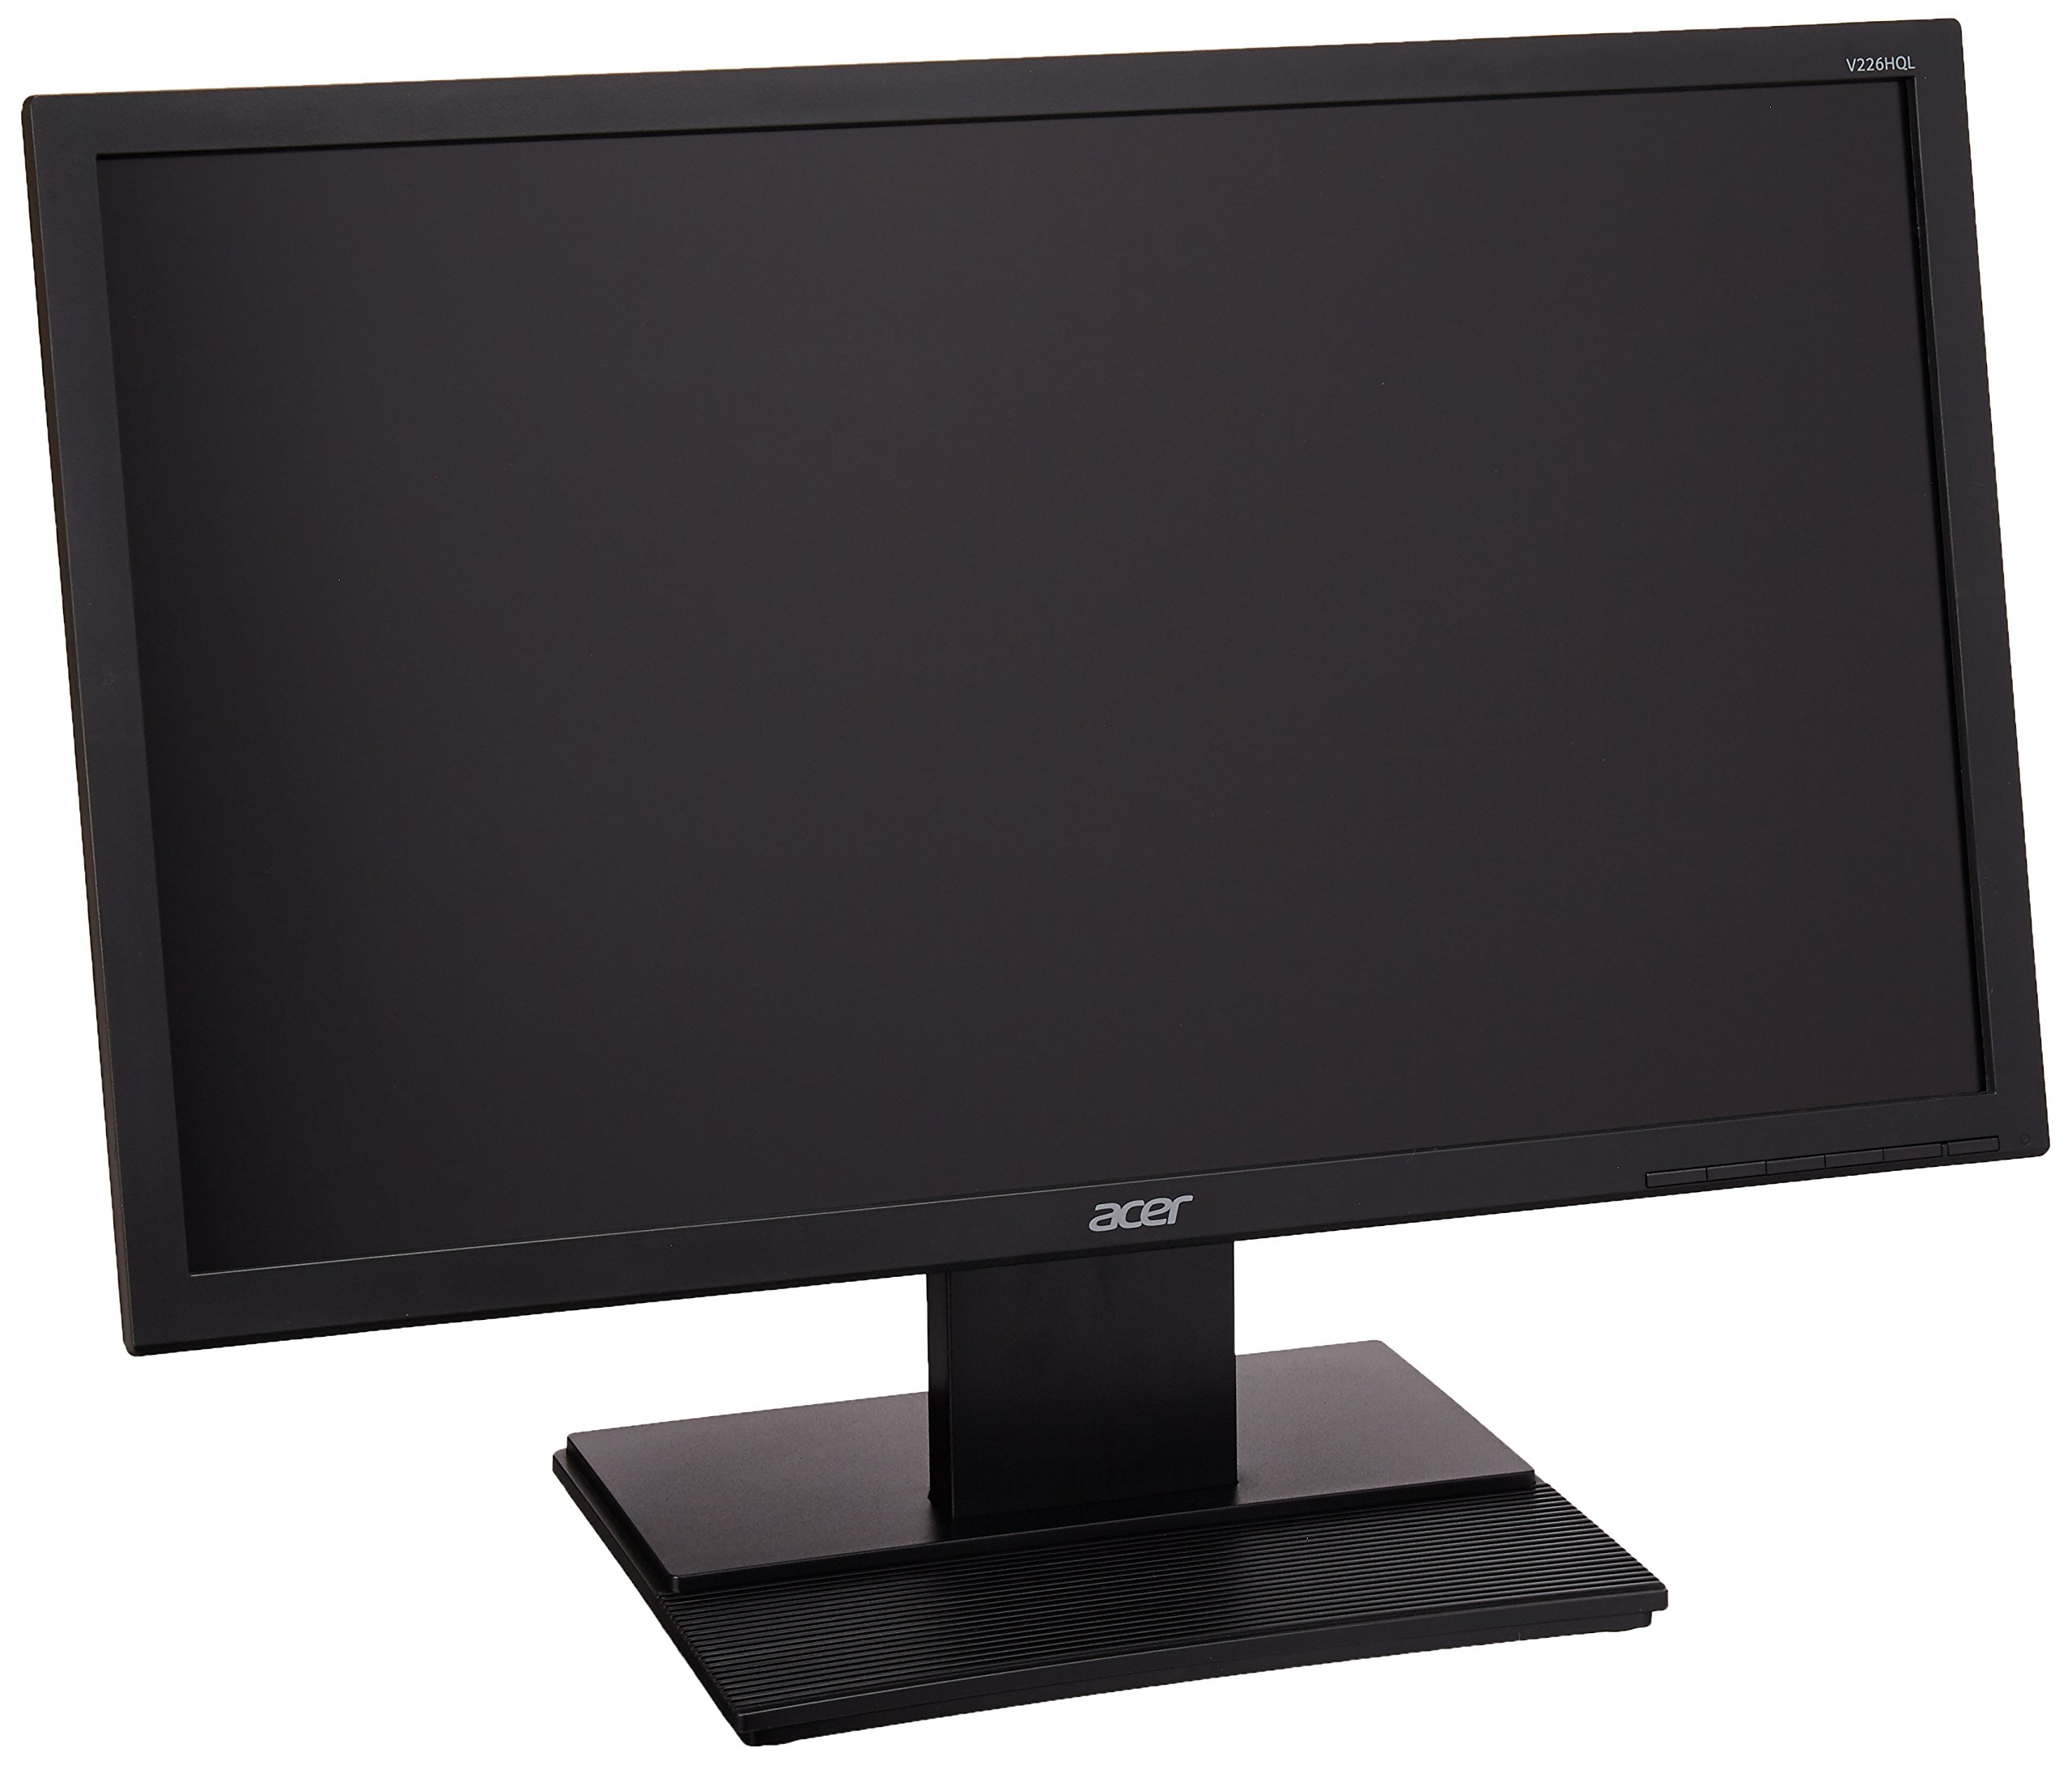 10 Sheets 22inch W Lcd Led Polarizing Film For Personal Computer Monitor Screen Computer & Office